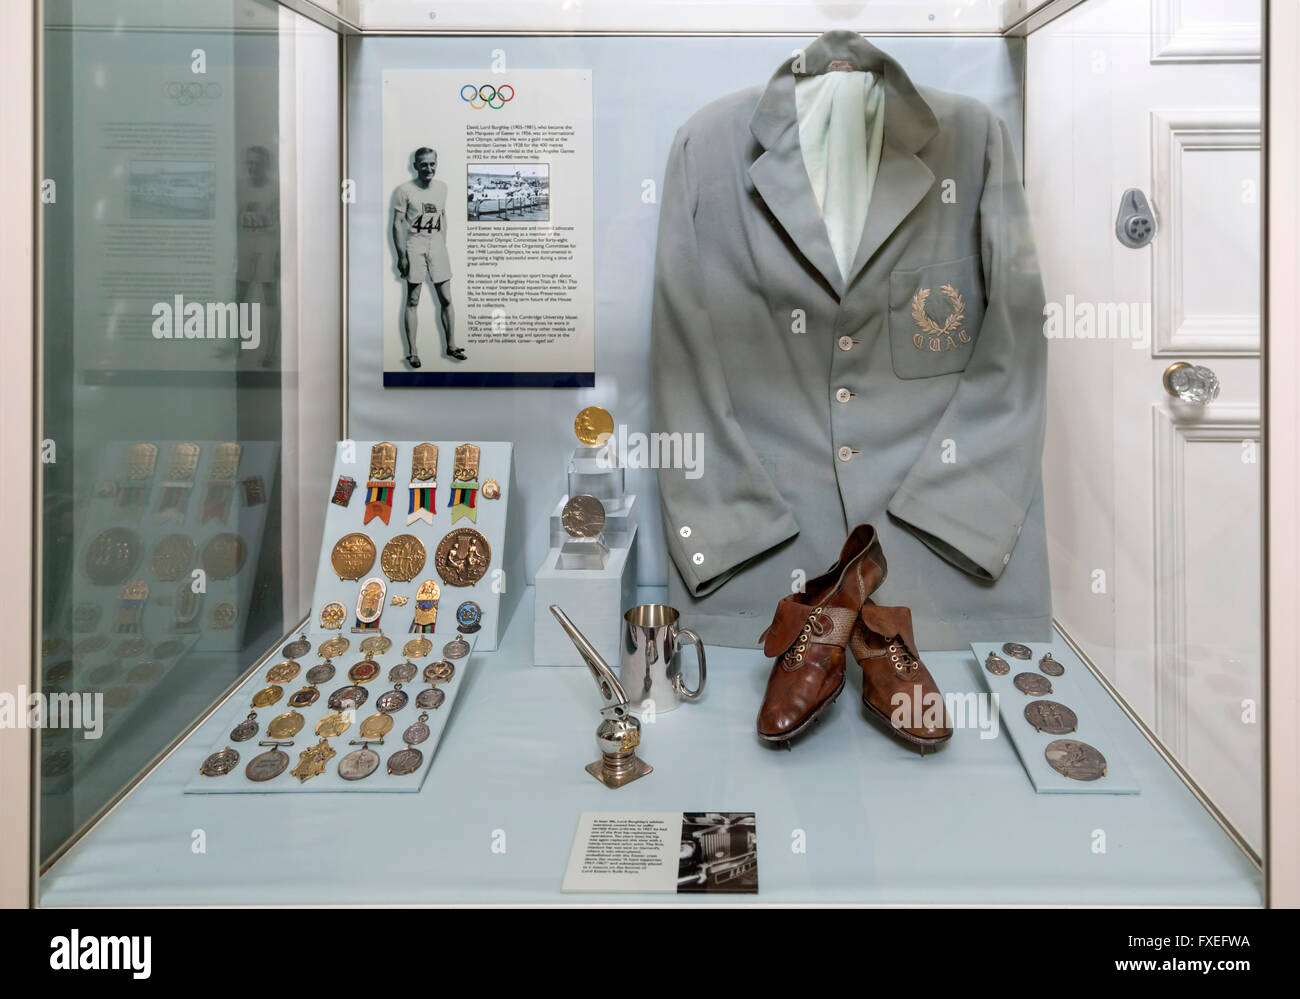 Glass case at Burghley House, showing David Burghley, who won the gold medal in the 400 m hurdles at the 1928 Summer - Stock Image